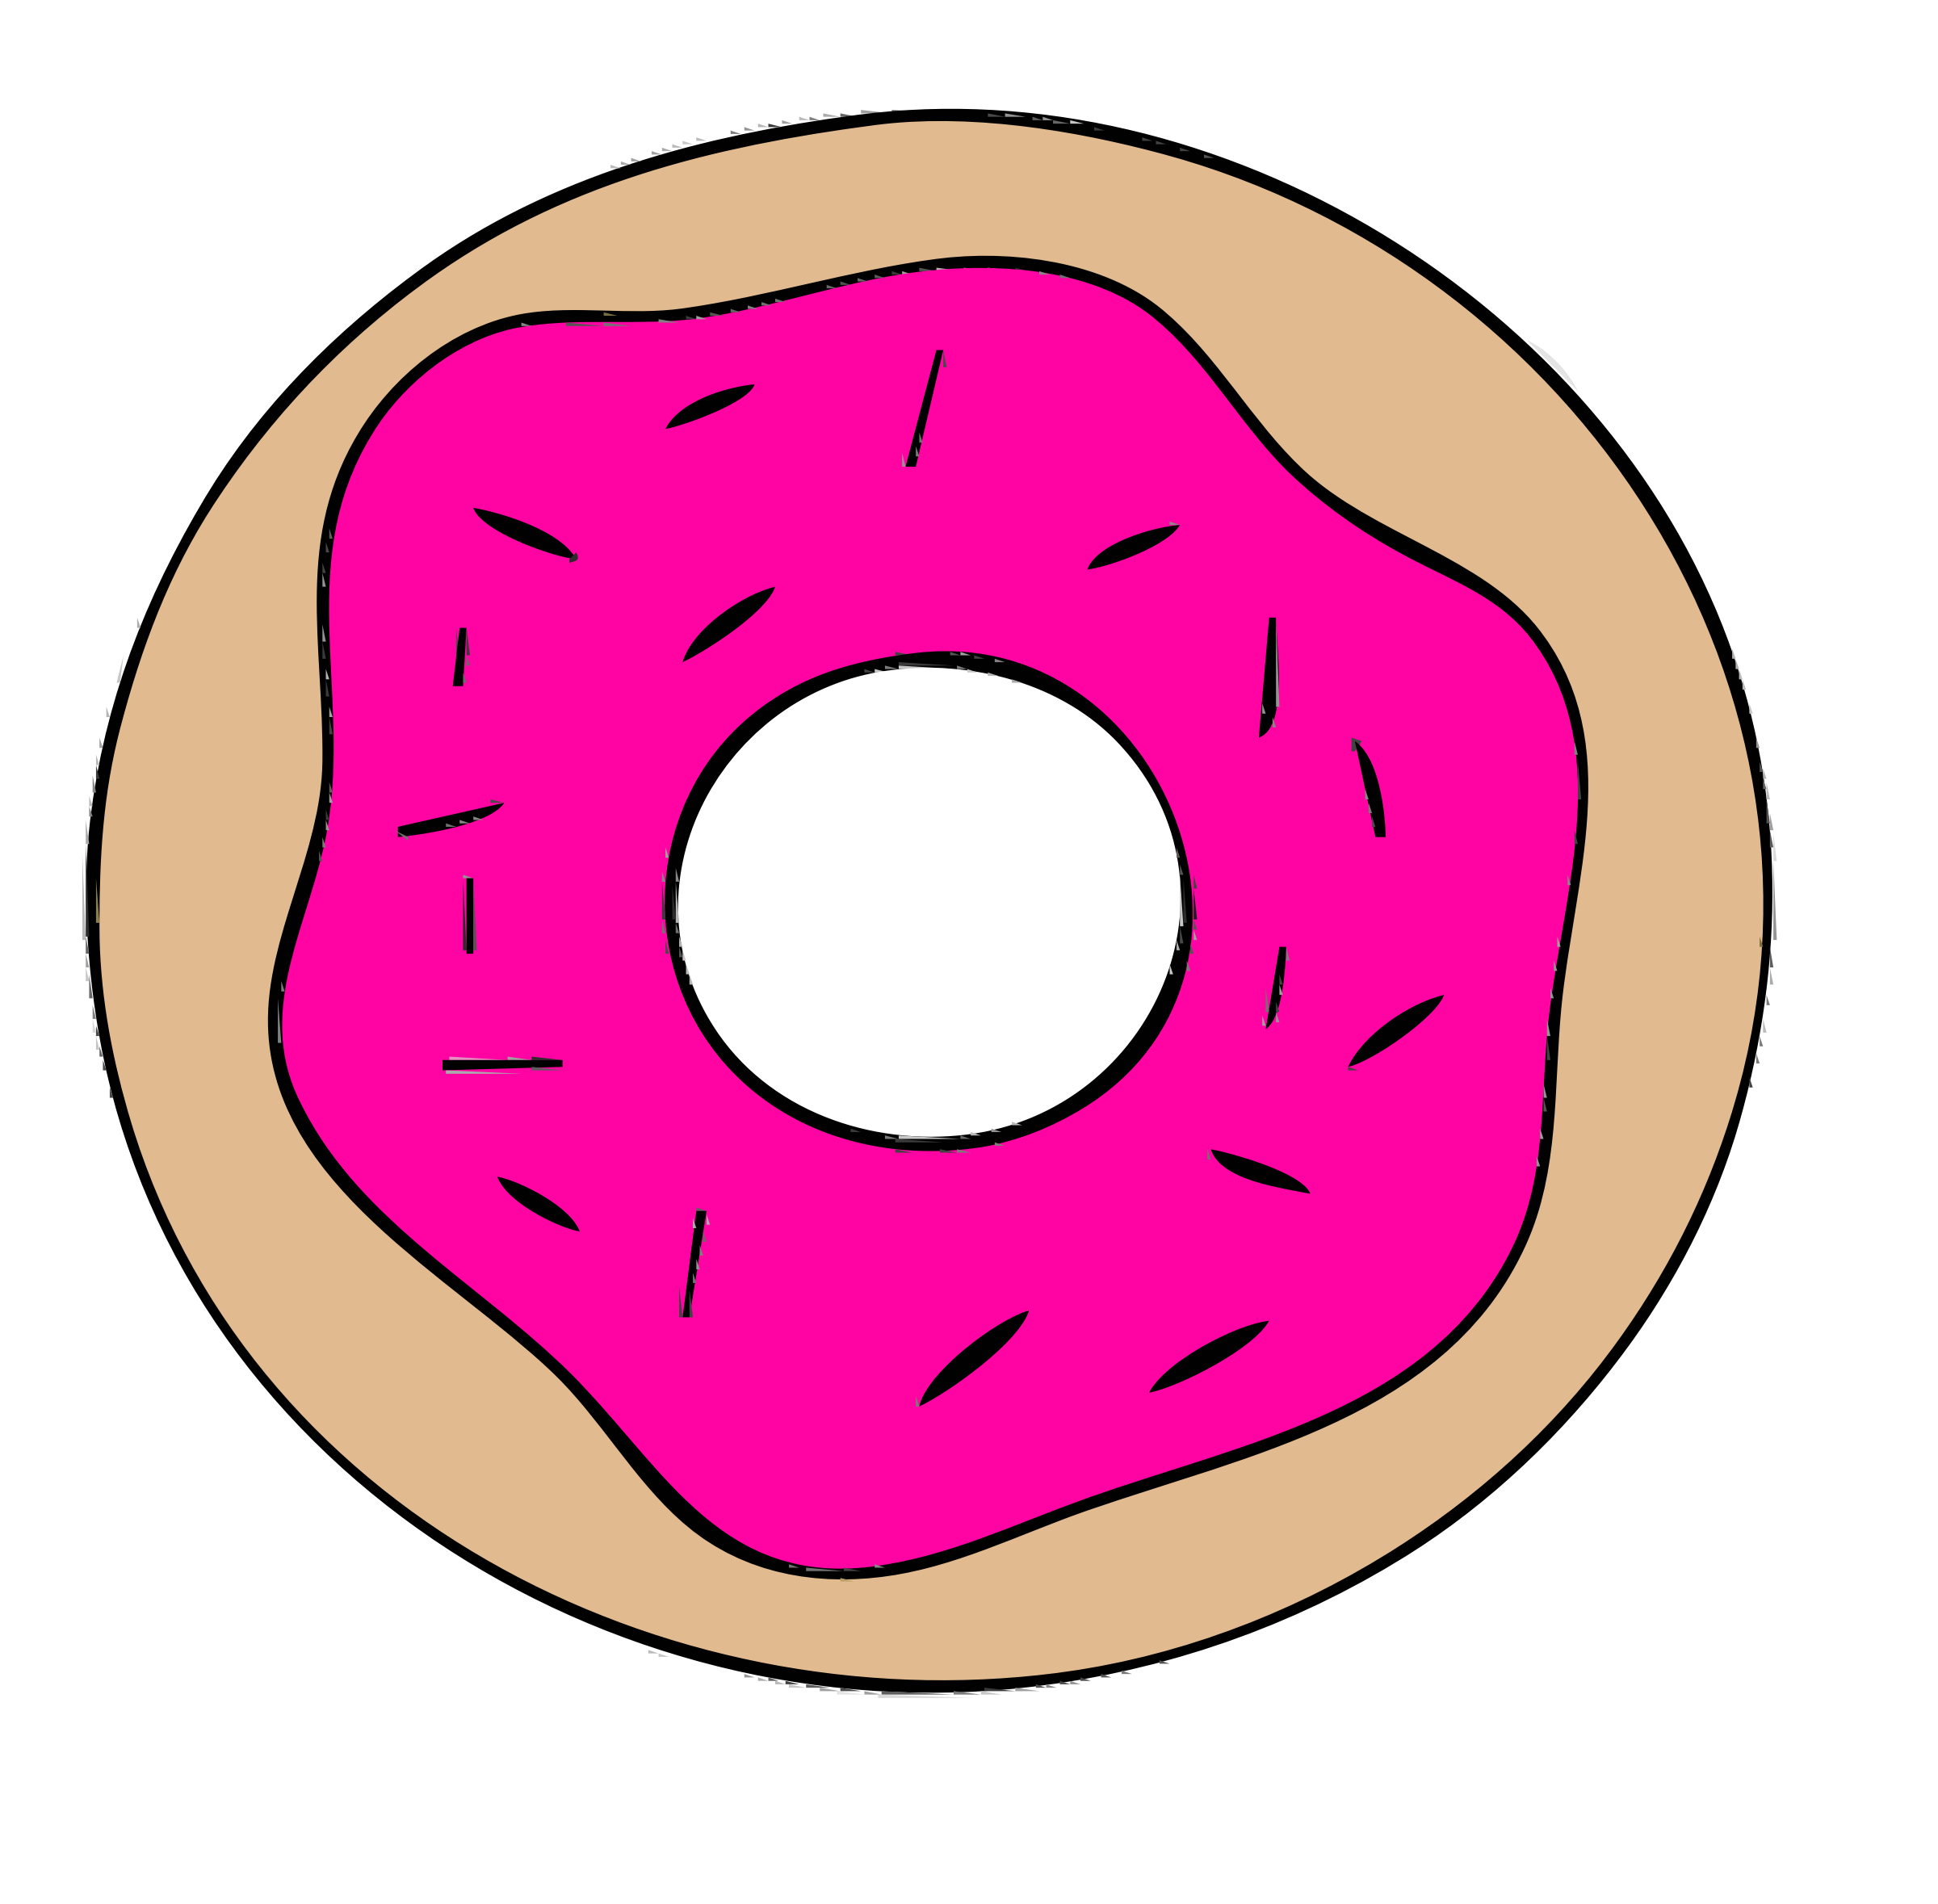 do you like doughnuts? 7 by cnestory